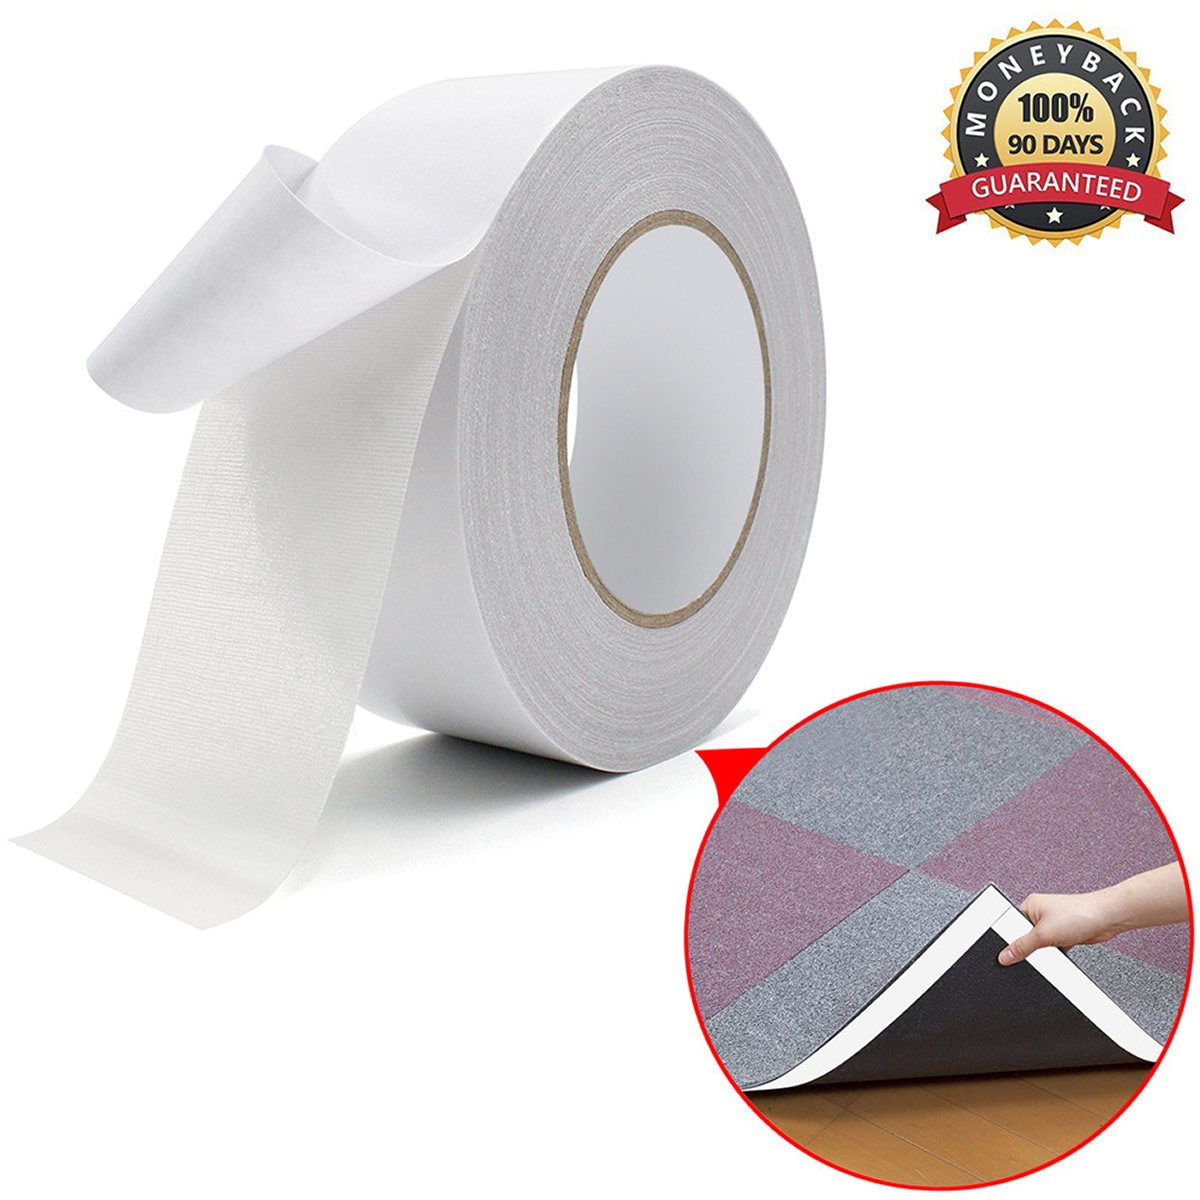 Double Sided Carpet Tape OKPOW Multi-Purpose Removable Rug Tape Anti Slip Non Skid Rug Pad Underlayment Strong Adhesive for Indoor and Outdoor Use 2-Inch x 33 Yards